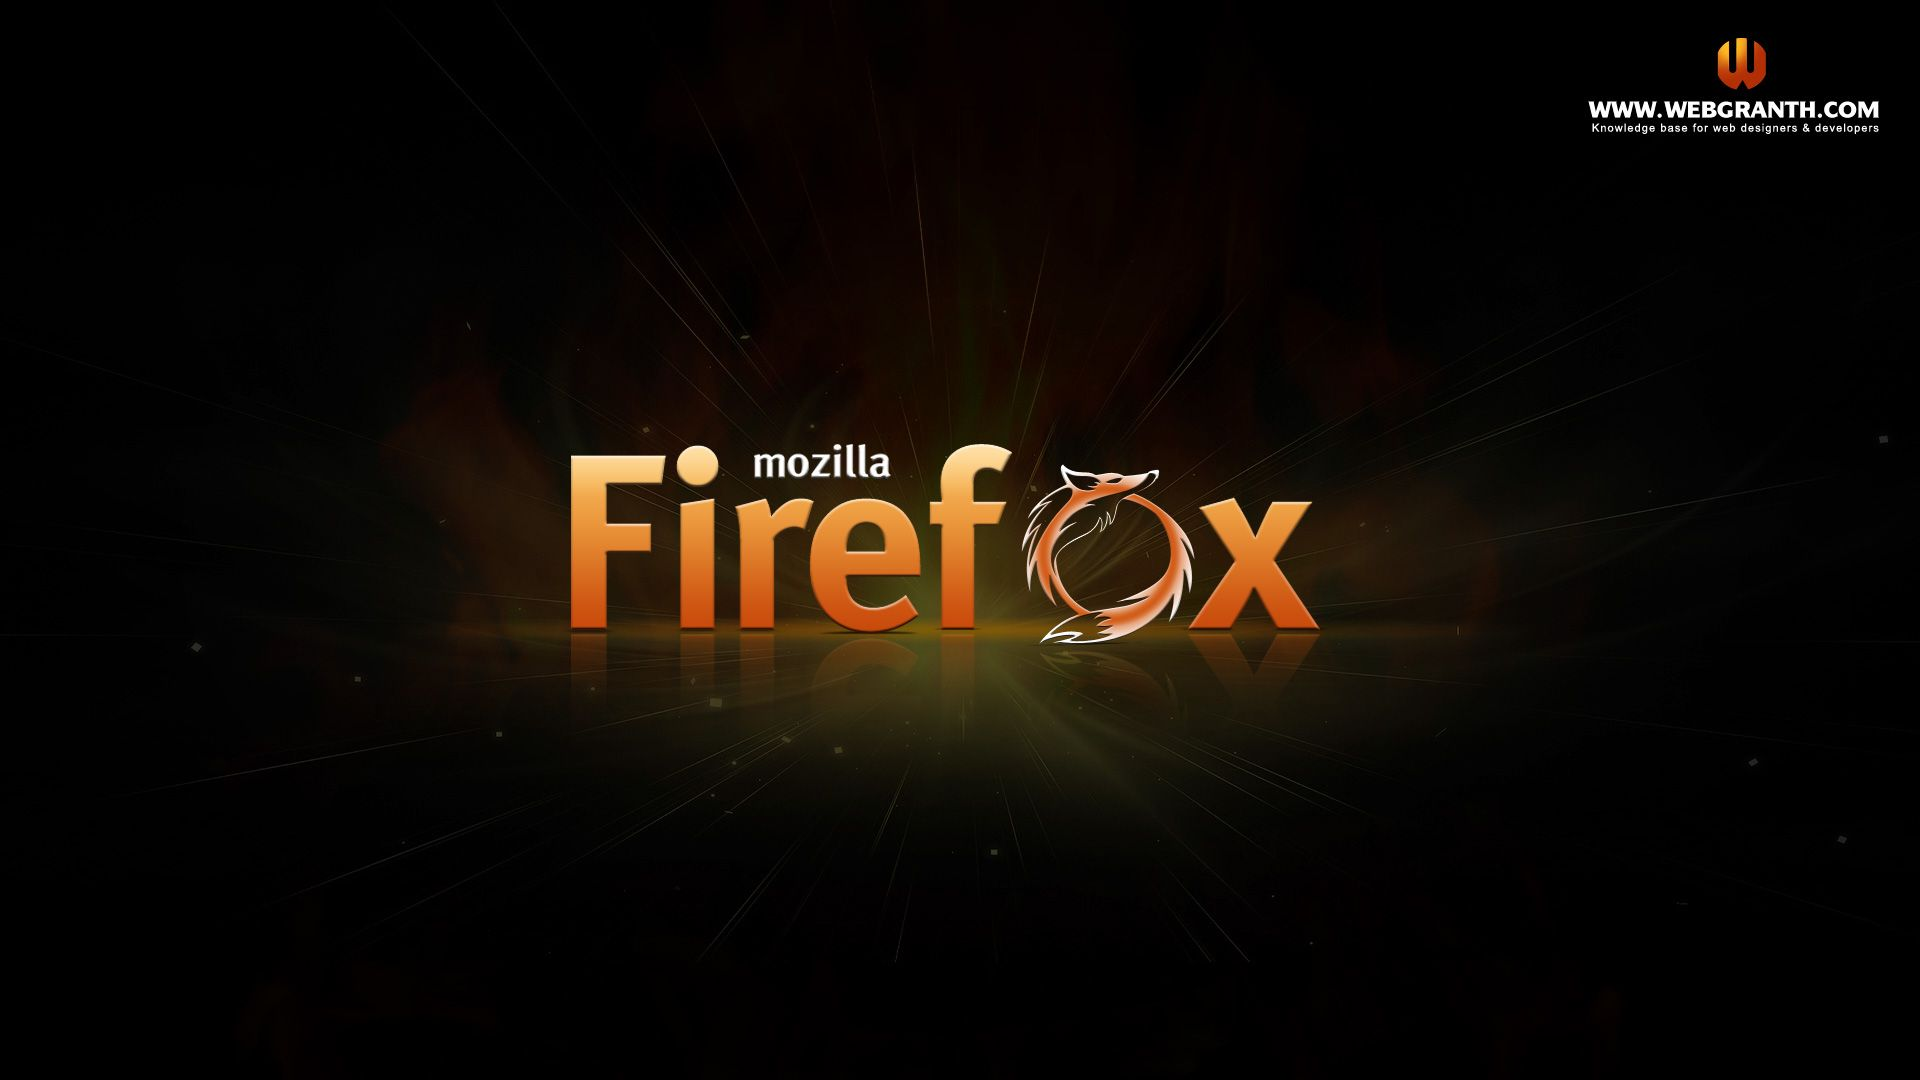 hd mozilla firefox wallpaper 2013 @webgranth | wallpapers | pinterest